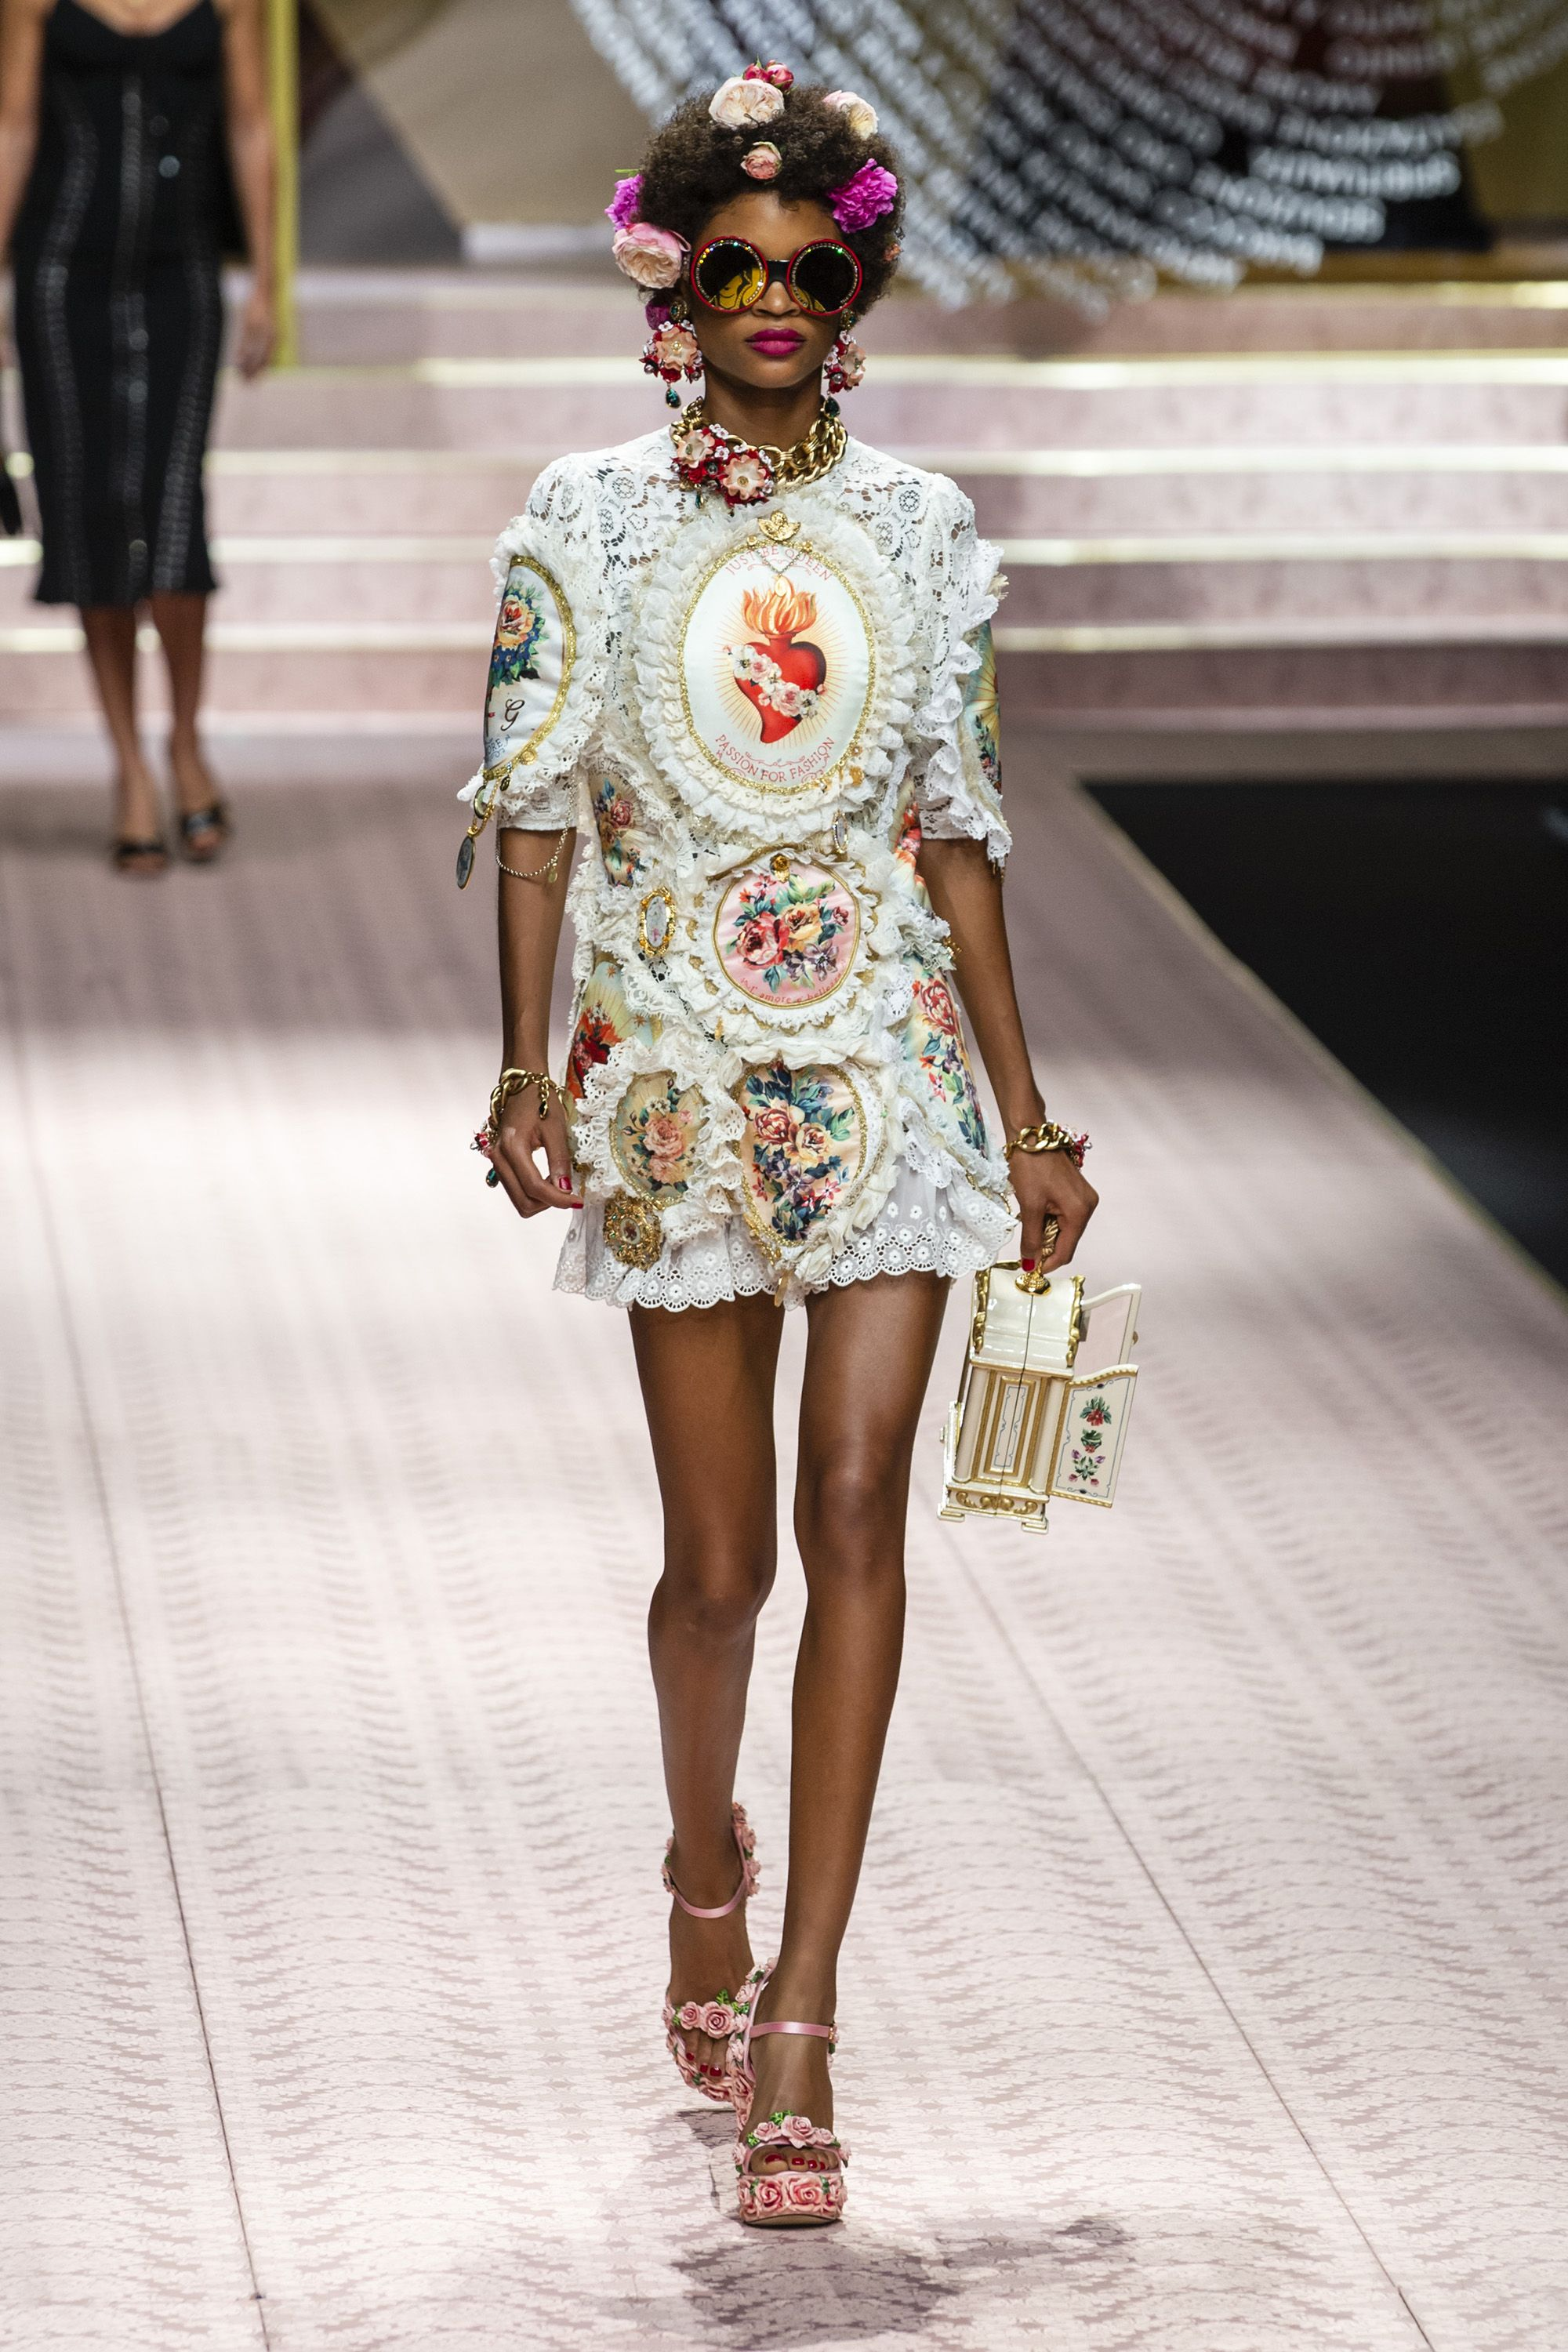 76a1fdd0230 Milan Fashion Week Runway Spring 2019 - Spring 2019 Trends Milan Fashion  Week